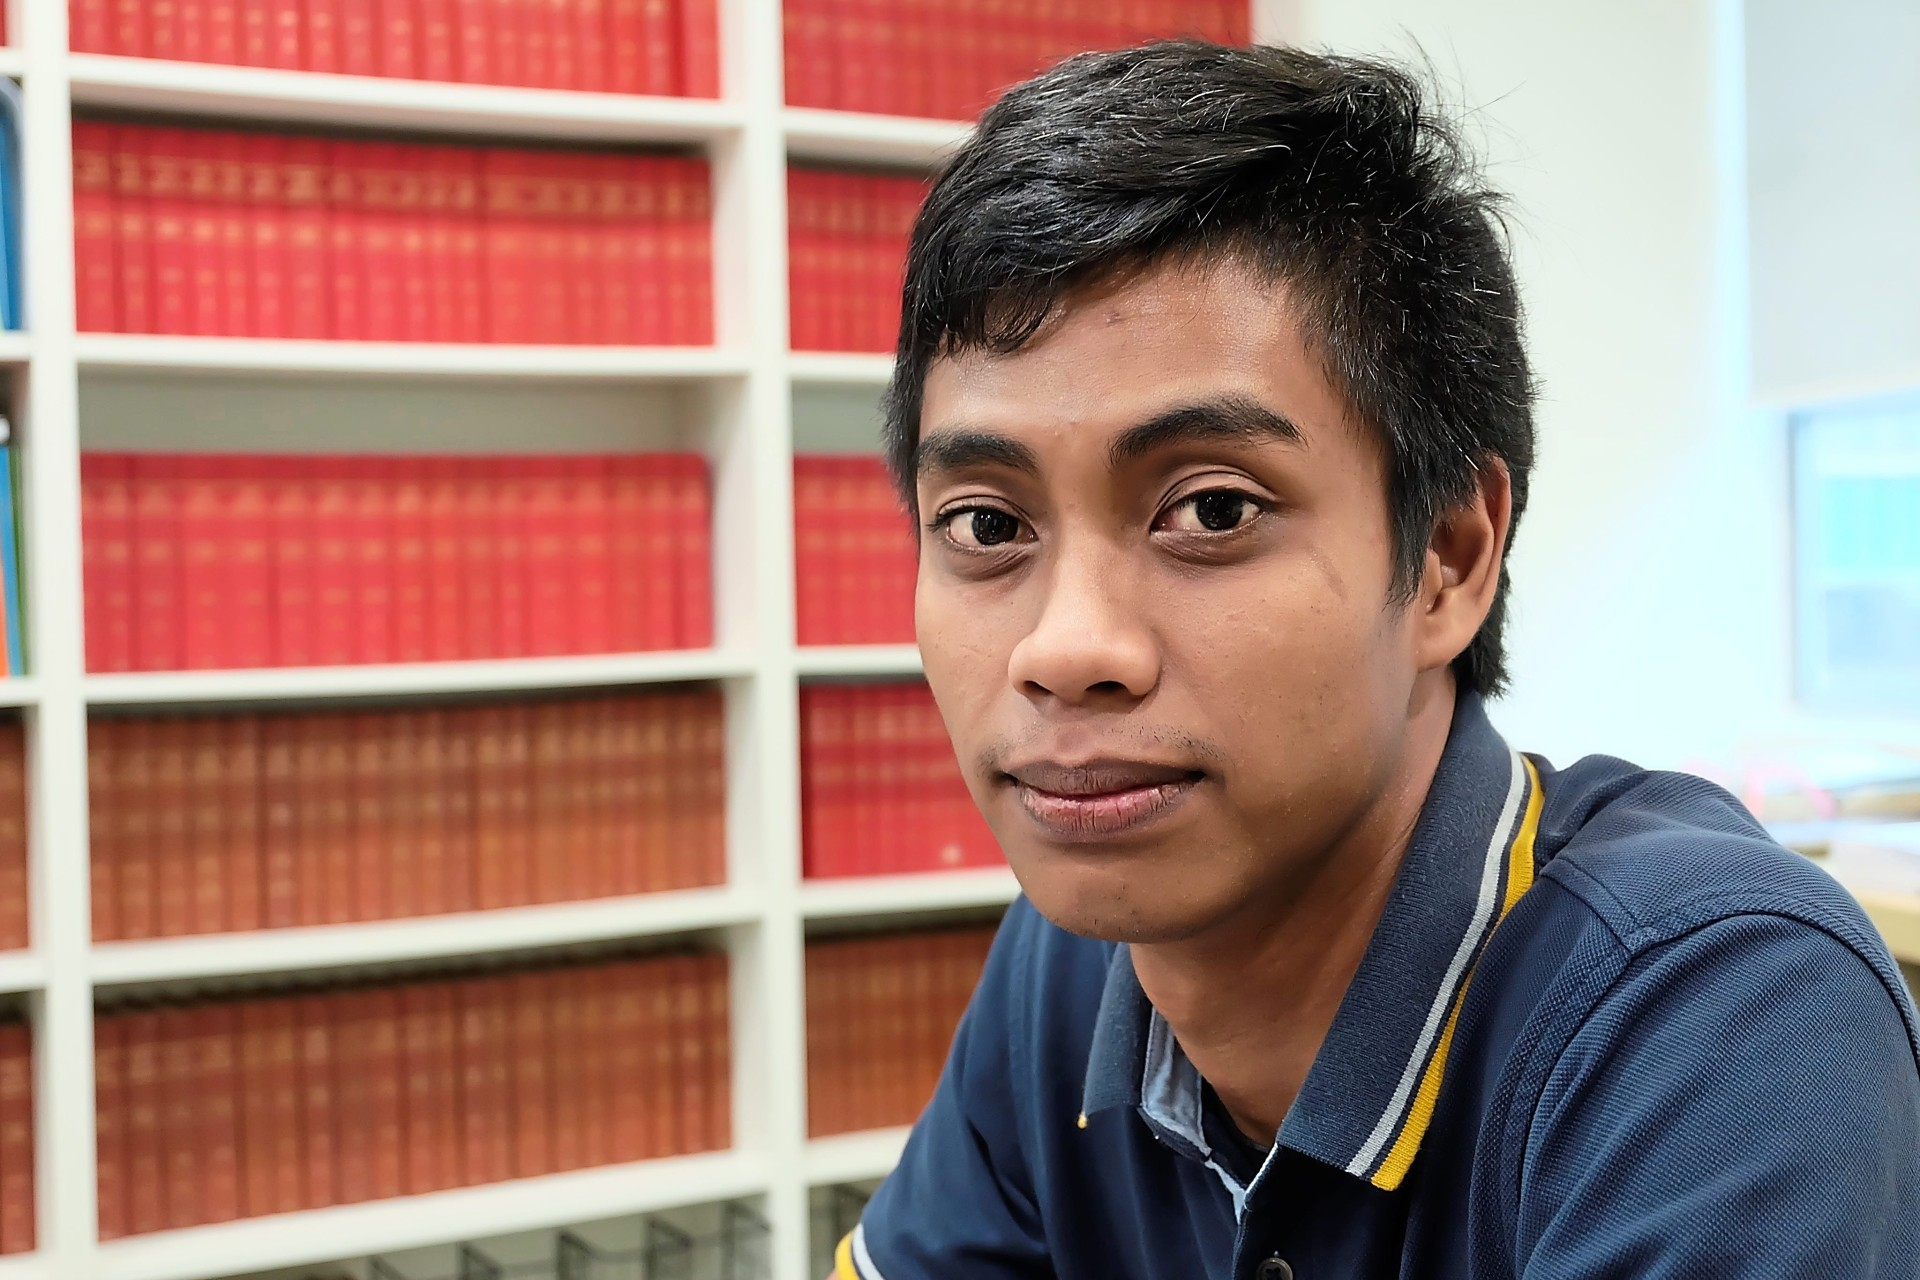 Stateless man from Sabah finally granted citizenship